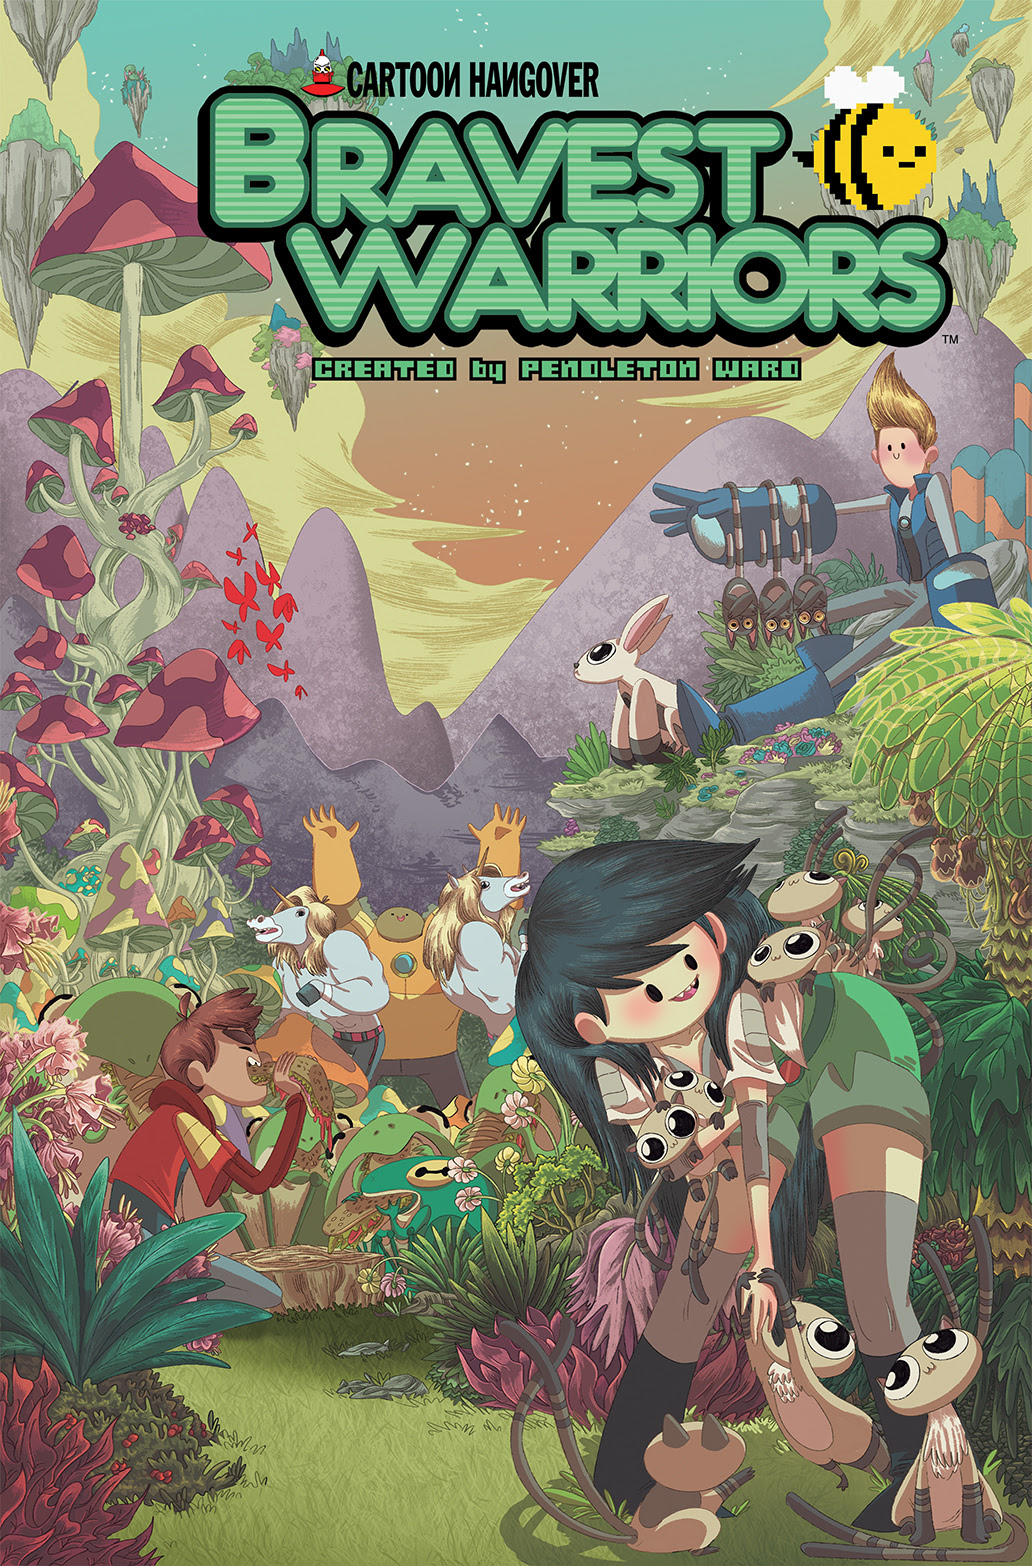 BRAVEST WARRIORS #20 Cover A by Jose Garcia